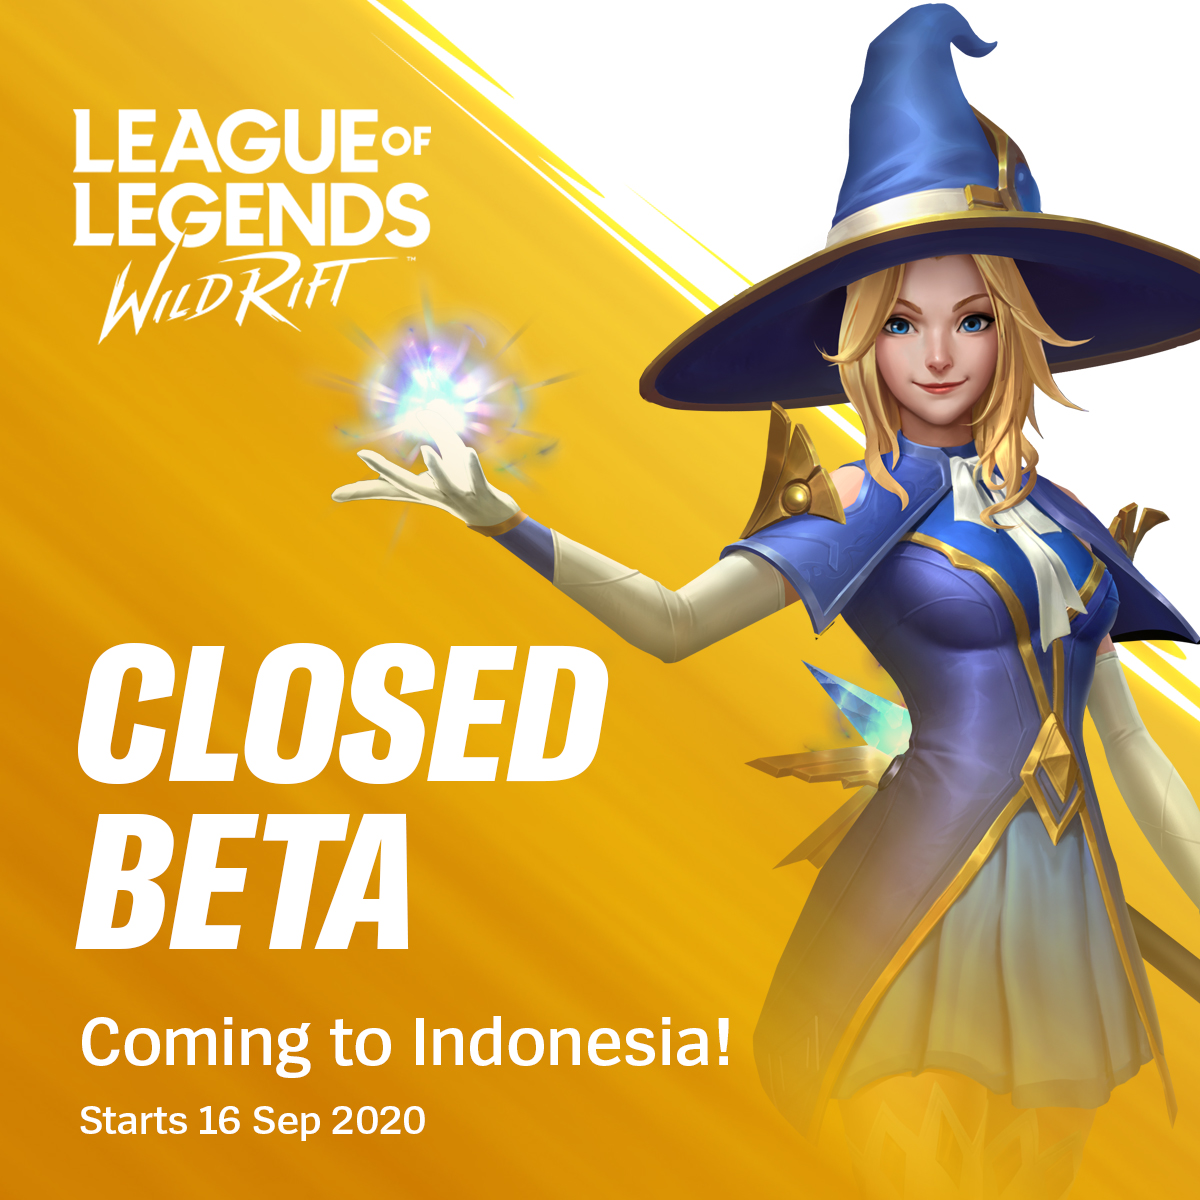 League Of Legends Wild Rift On Twitter Warm Up Your Thumbs Because Wild Rift Closed Beta Starts Today In Indonesia Android Users Can Check Our App Page On Google Play And We Ll